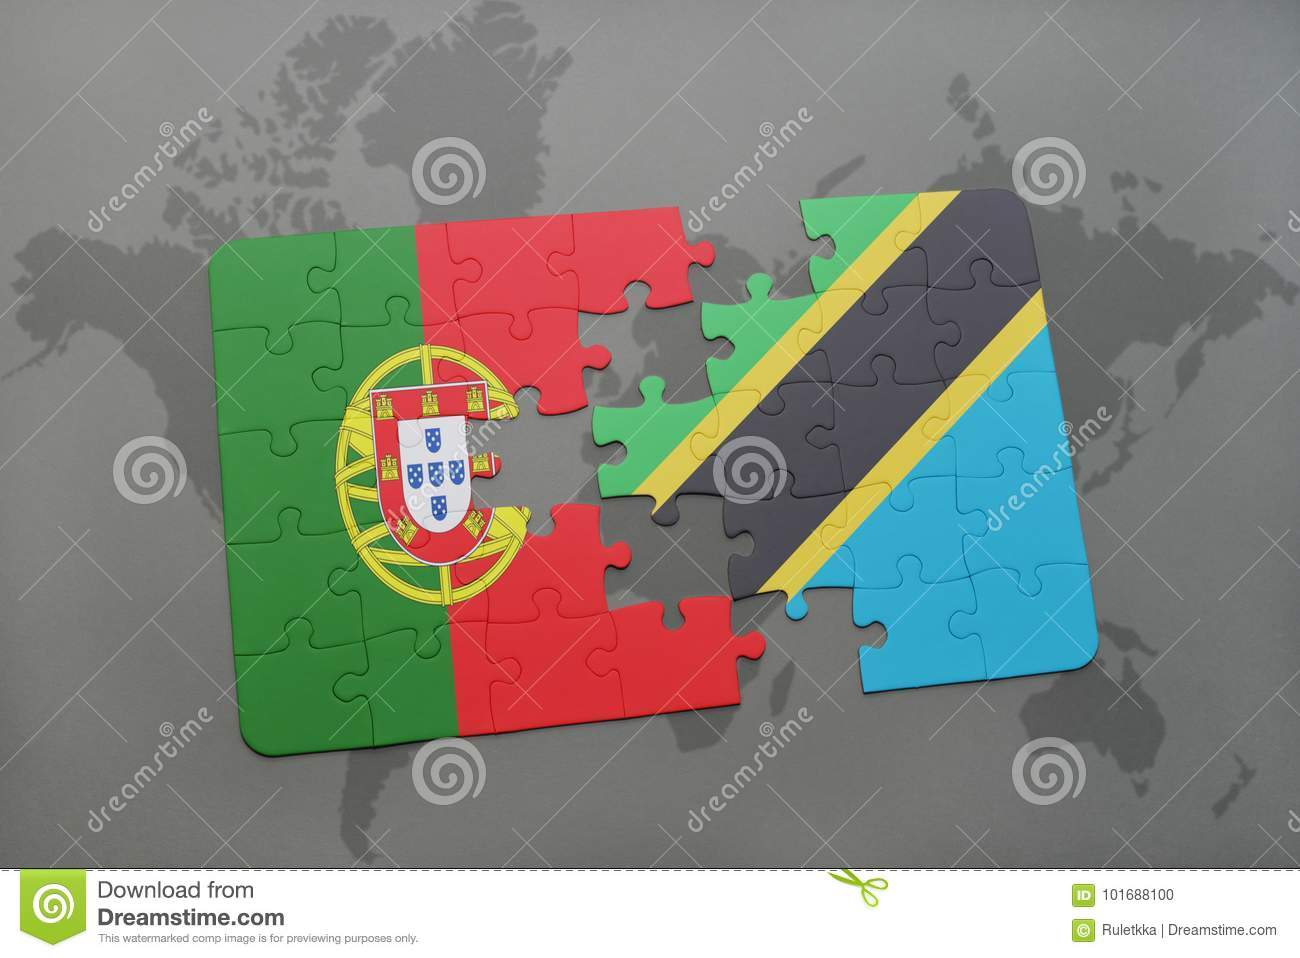 Puzzle with the national flag of portugal and tanzania on a world download puzzle with the national flag of portugal and tanzania on a world map background gumiabroncs Images